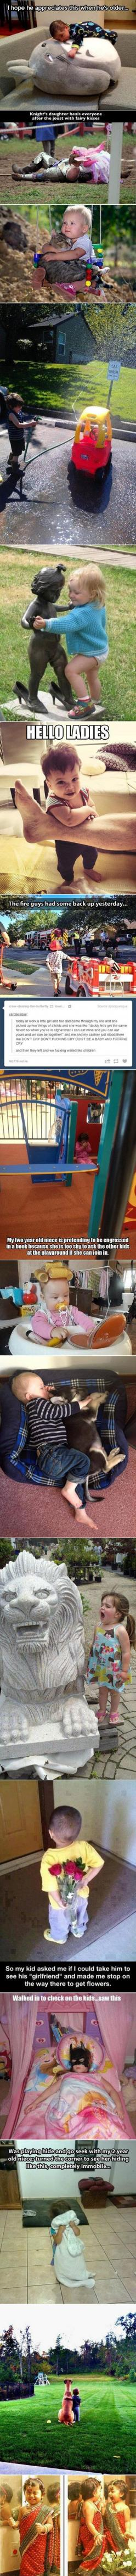 Here are some funny and geeky kids who are doing things right.: D Awwwww, Little Girls, Geeky Kids, Cute Kids, Funny Stuff, Cheer Up Funny Quotes, Funny Kids